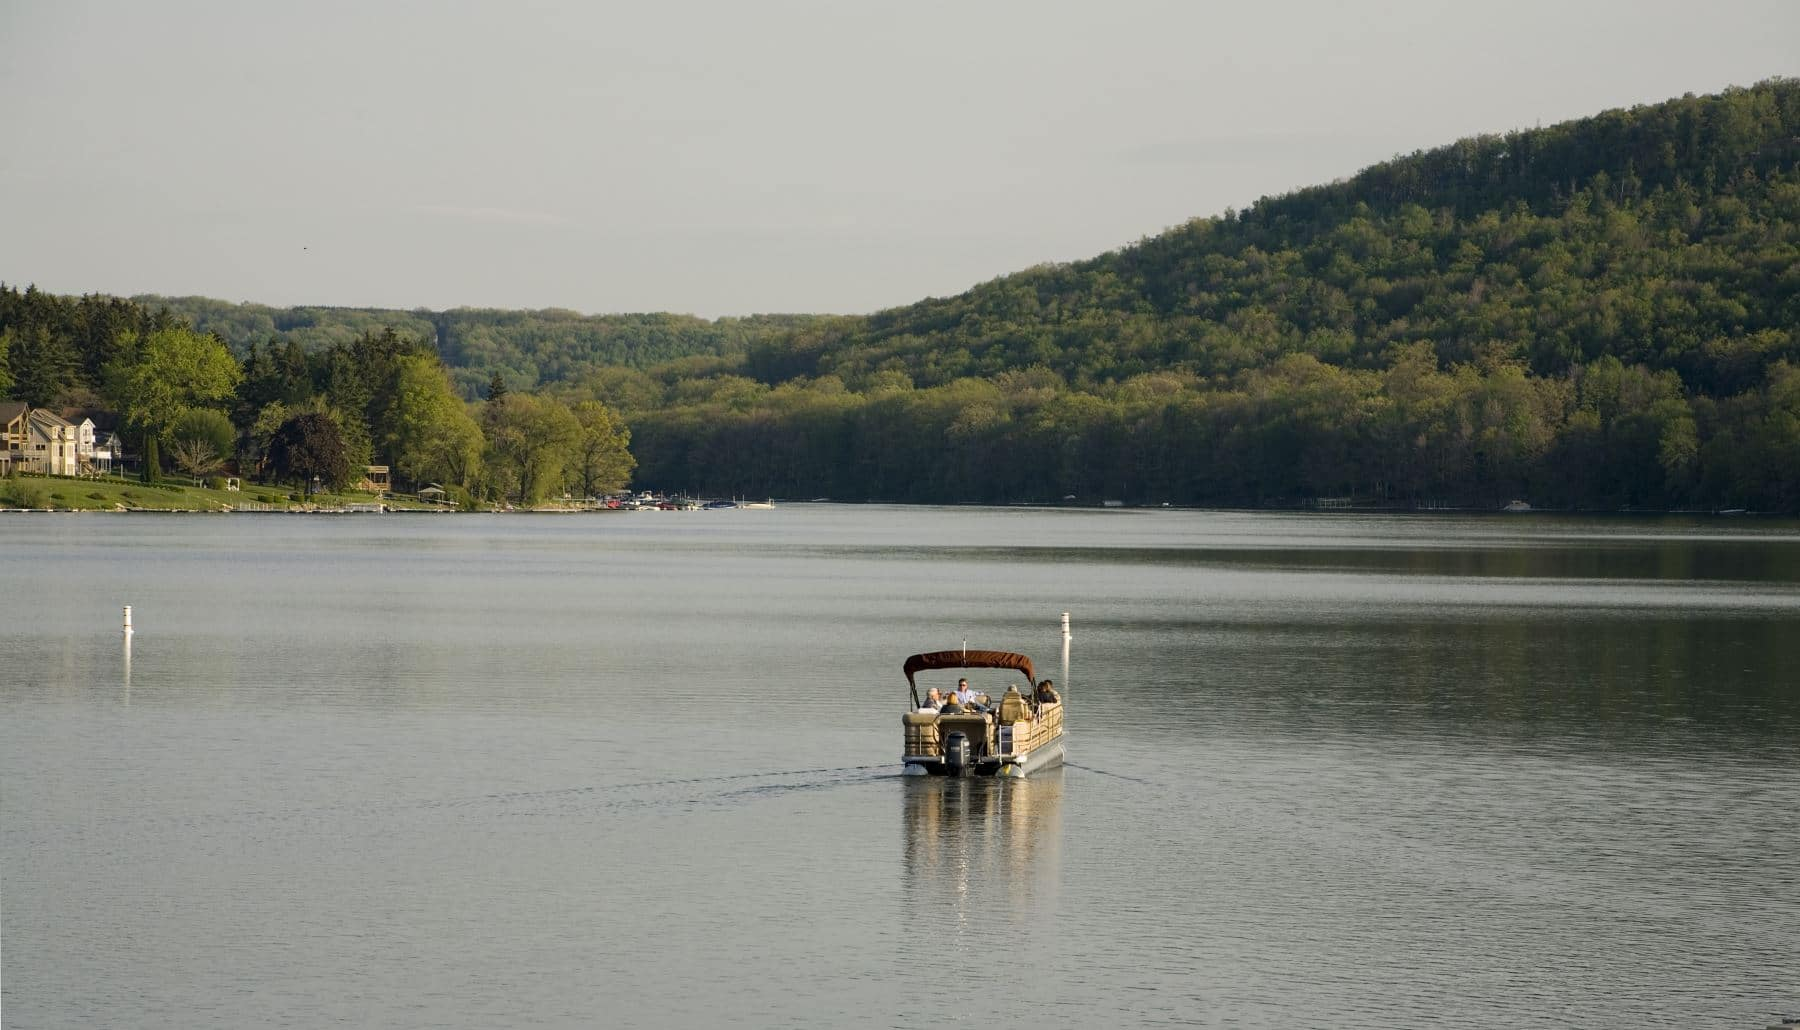 Adventurous things to do in Western Maryland